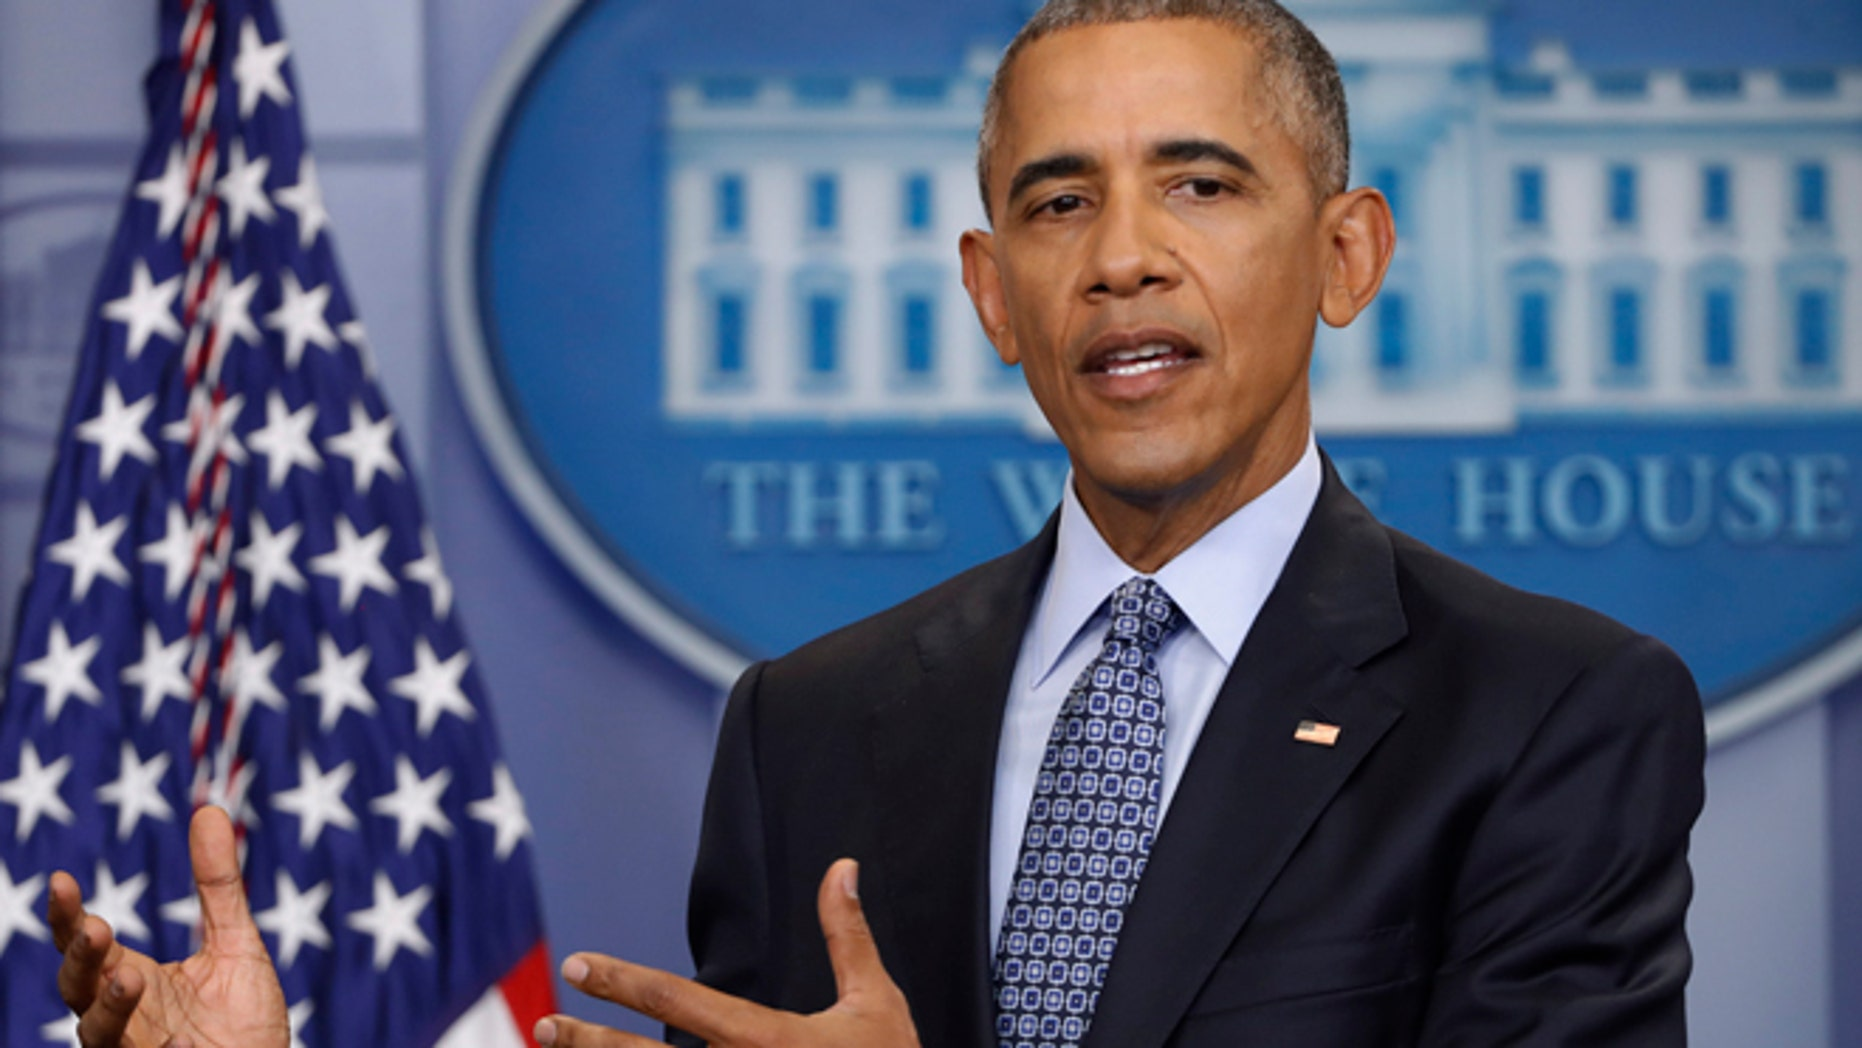 FILE - In this Jan. 18, 2017 file photo, President Barack Obama speaks during his final presidential news conference in the briefing room of the White House in Washington.